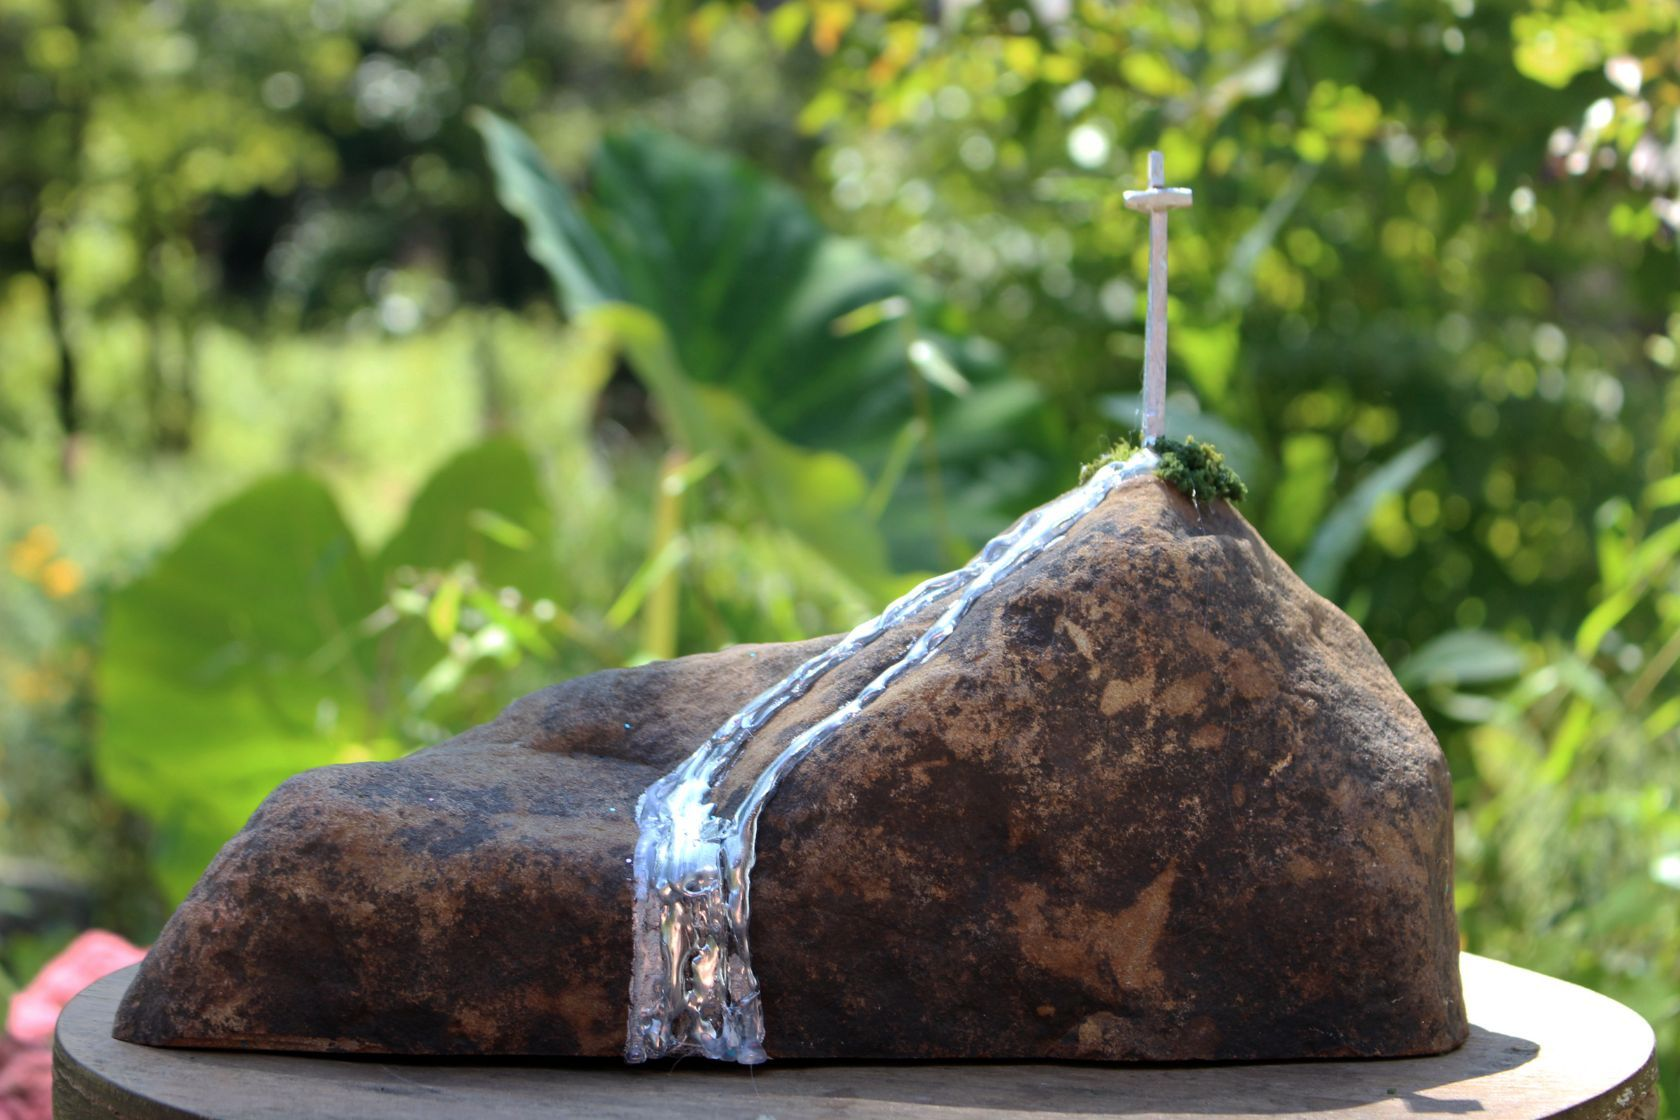 STREAM and CROSS, a One of a Kind, Unique, Christian-oriented Keepsake or Sharing Cremation Urn for Human or Pet Ashes